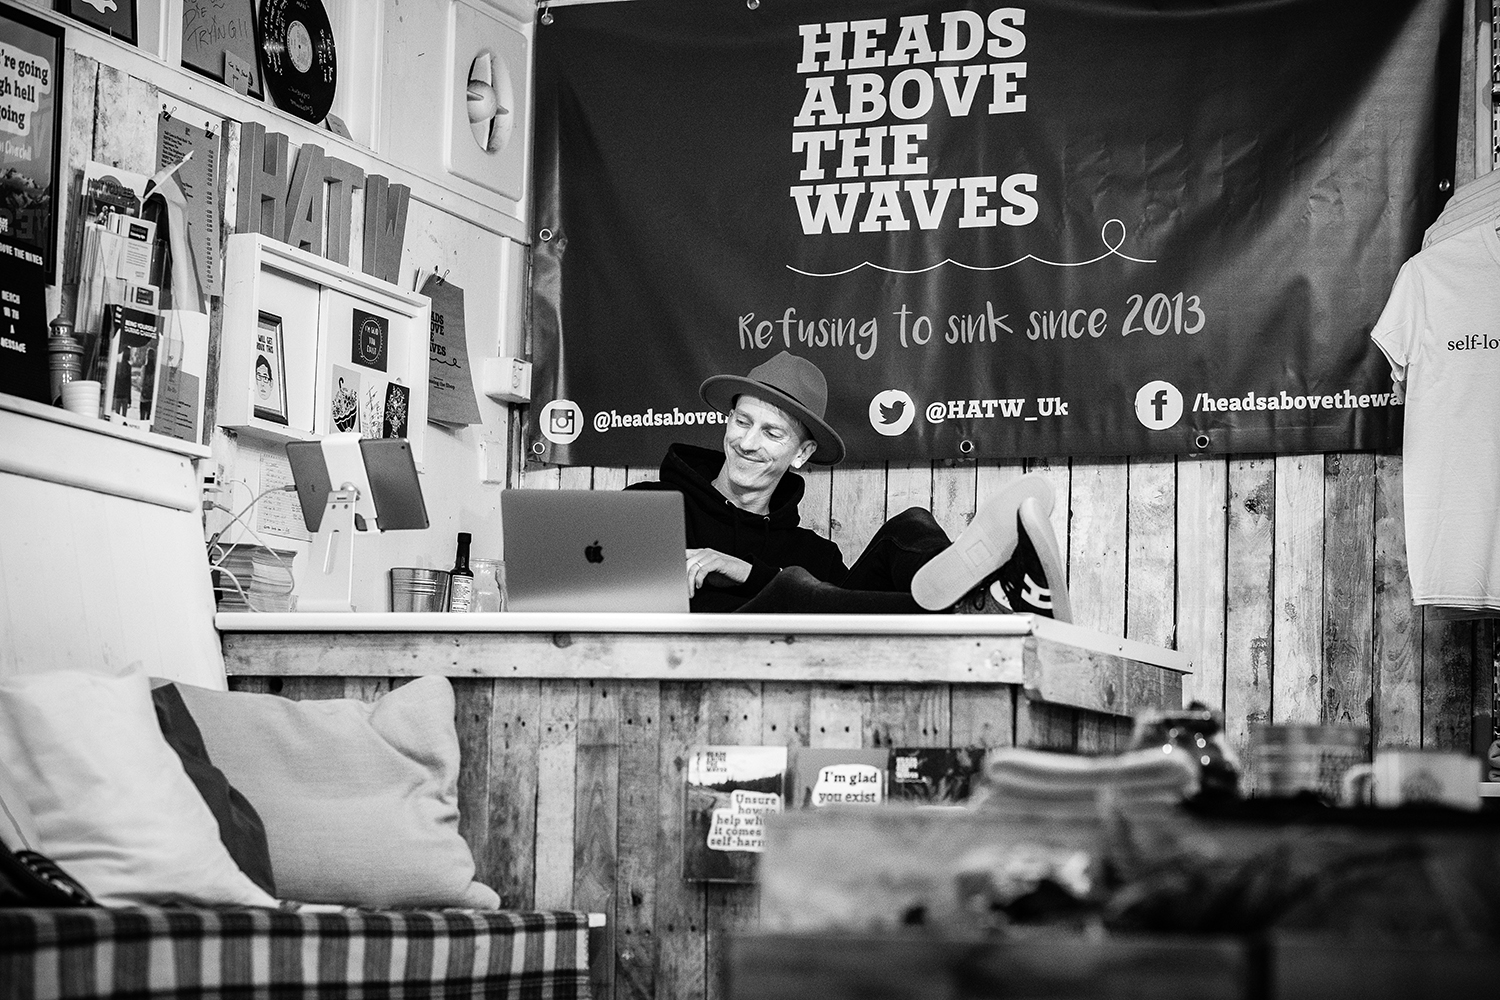 Heads above the waves shop interior